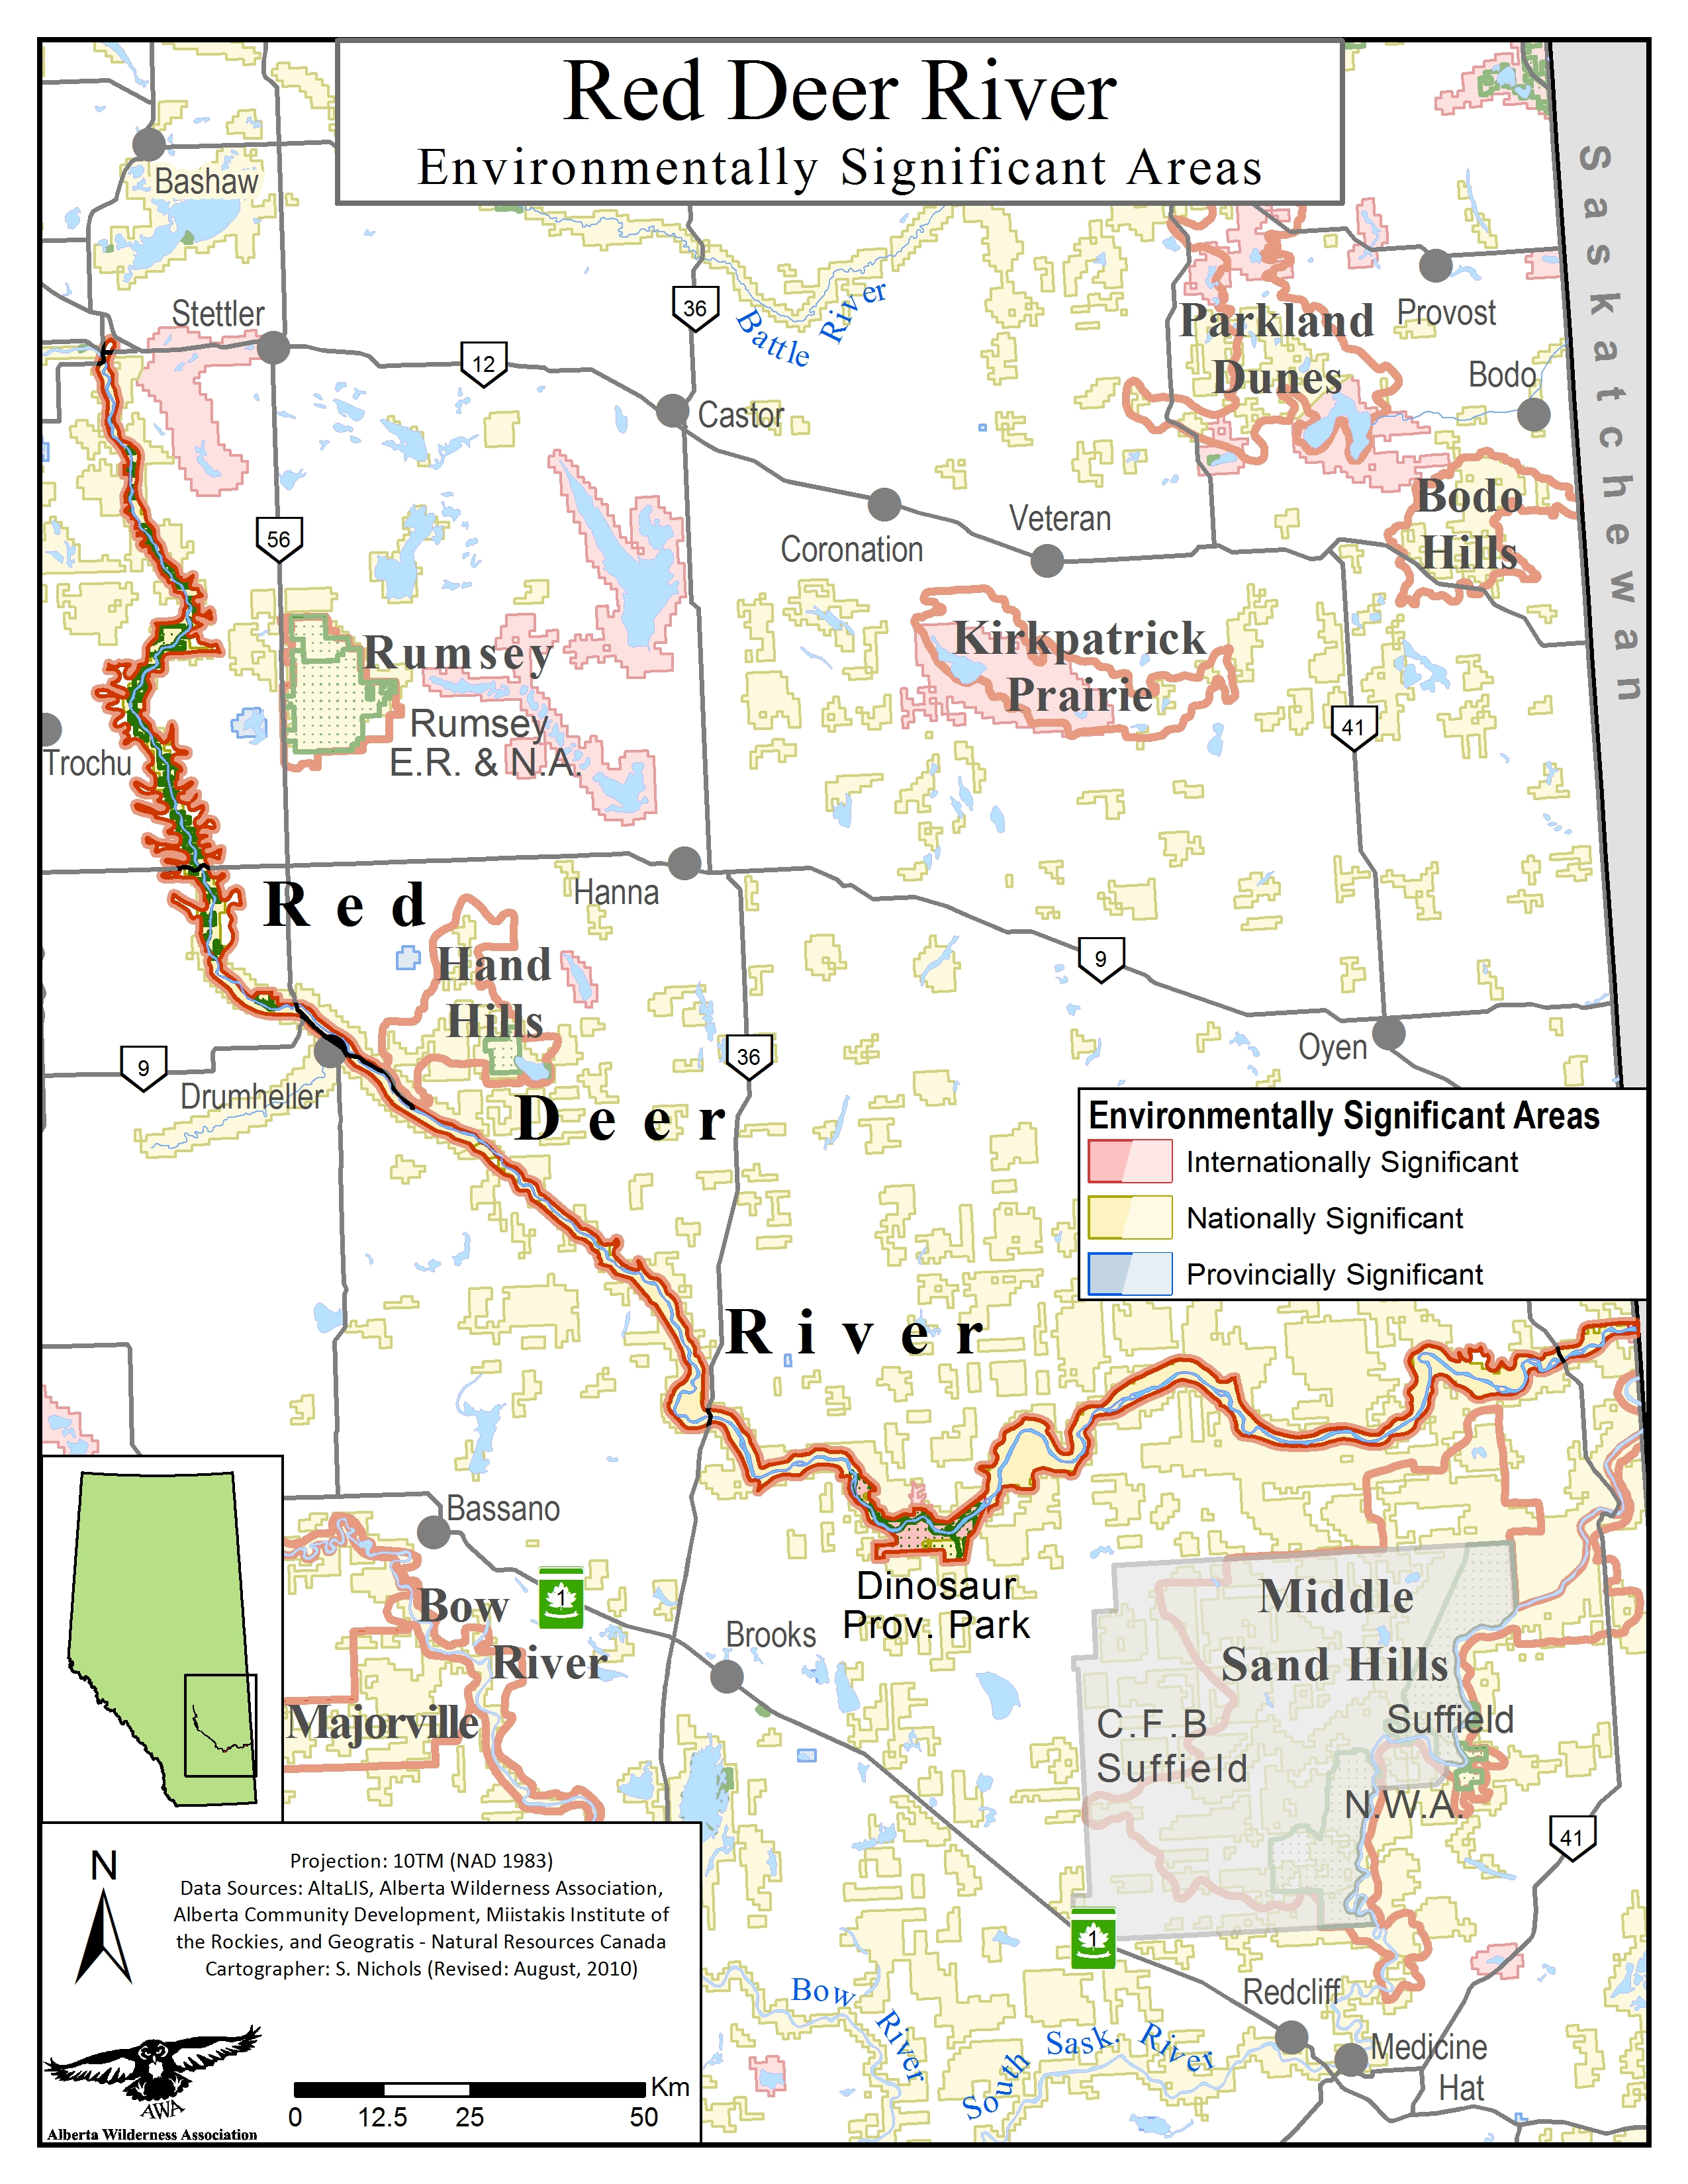 Red Deer River - Alberta Wilderness Association